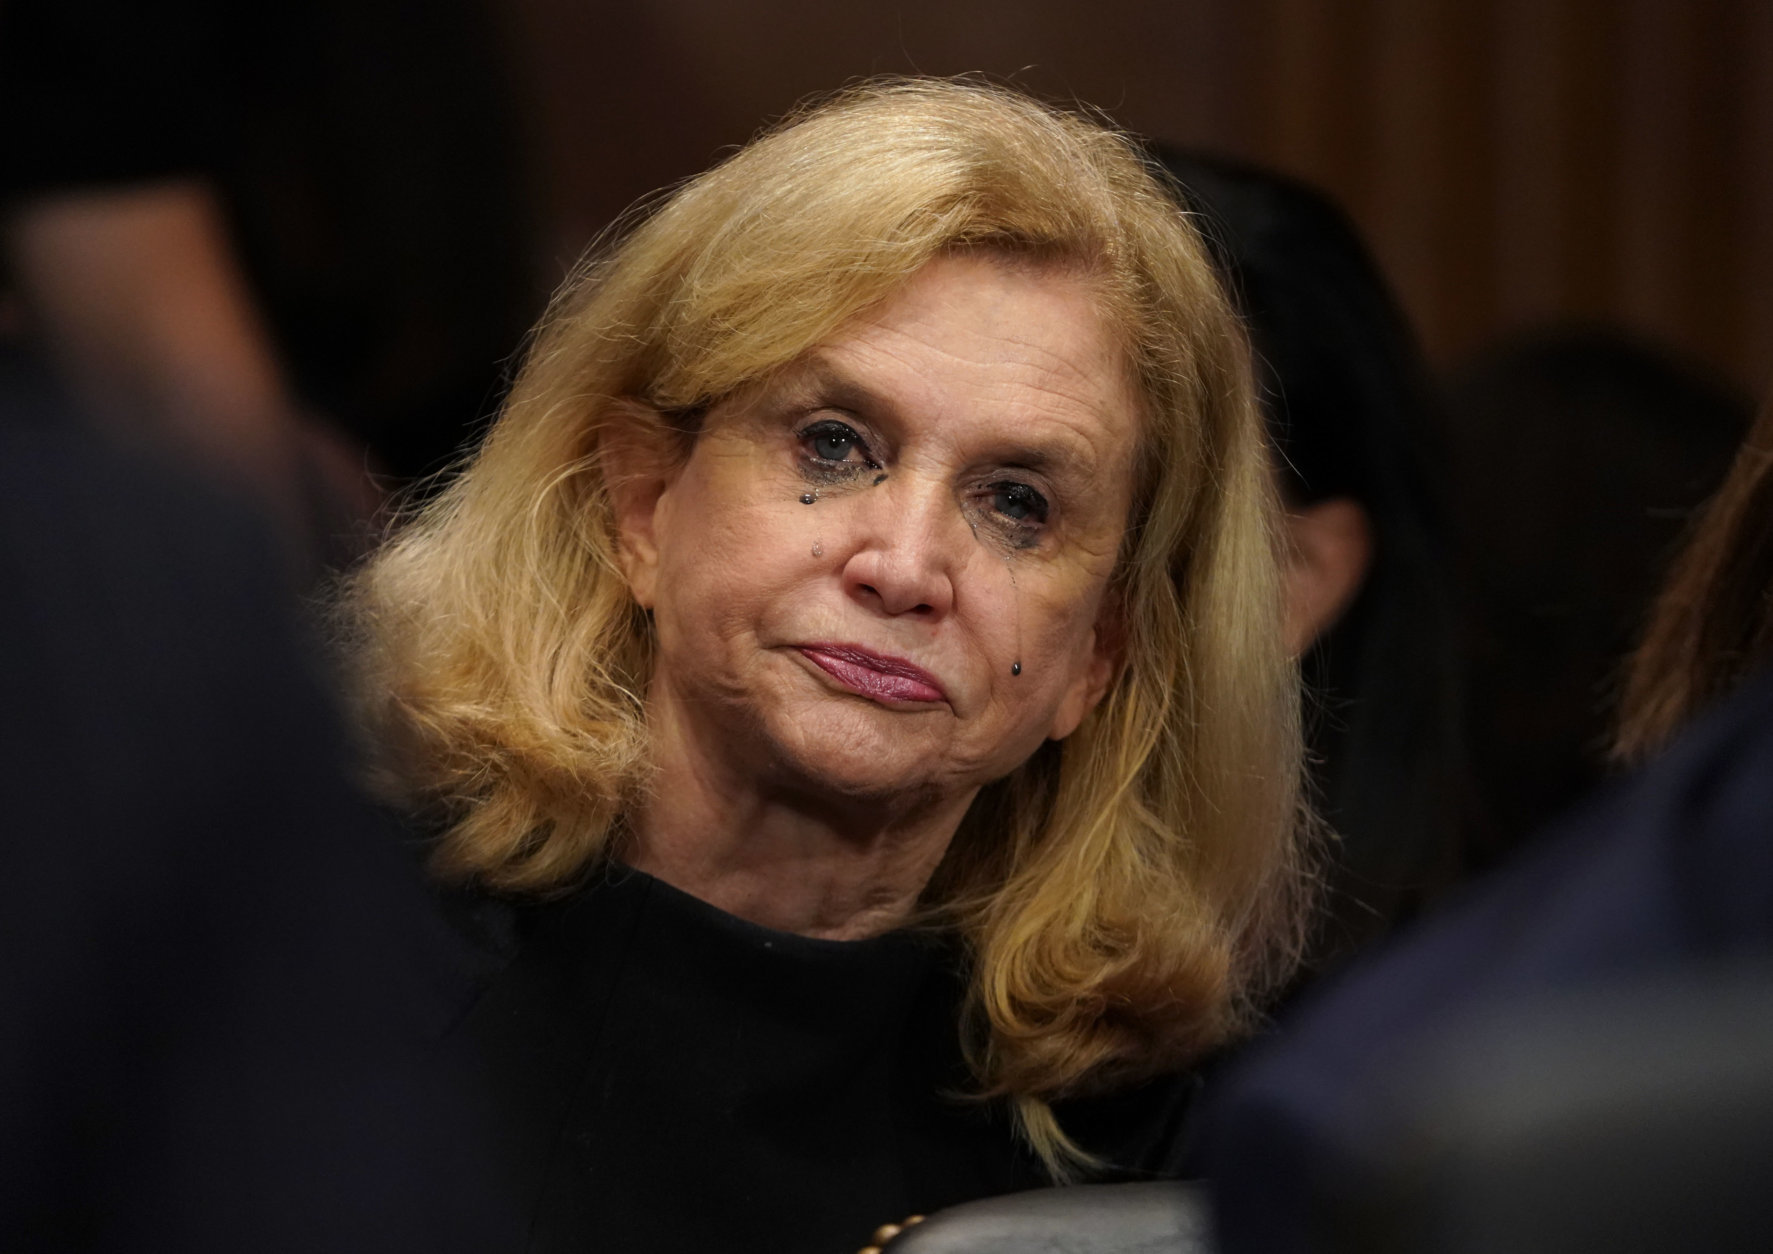 Rep. Carolyn Maloney, D-N.Y., cries as Christine Blasey Ford testifies before the Senate Judiciary Committee on Capitol Hill in Washington, Thursday, Sept. 27, 2018. (AP Photo/Andrew Harnik, Pool)